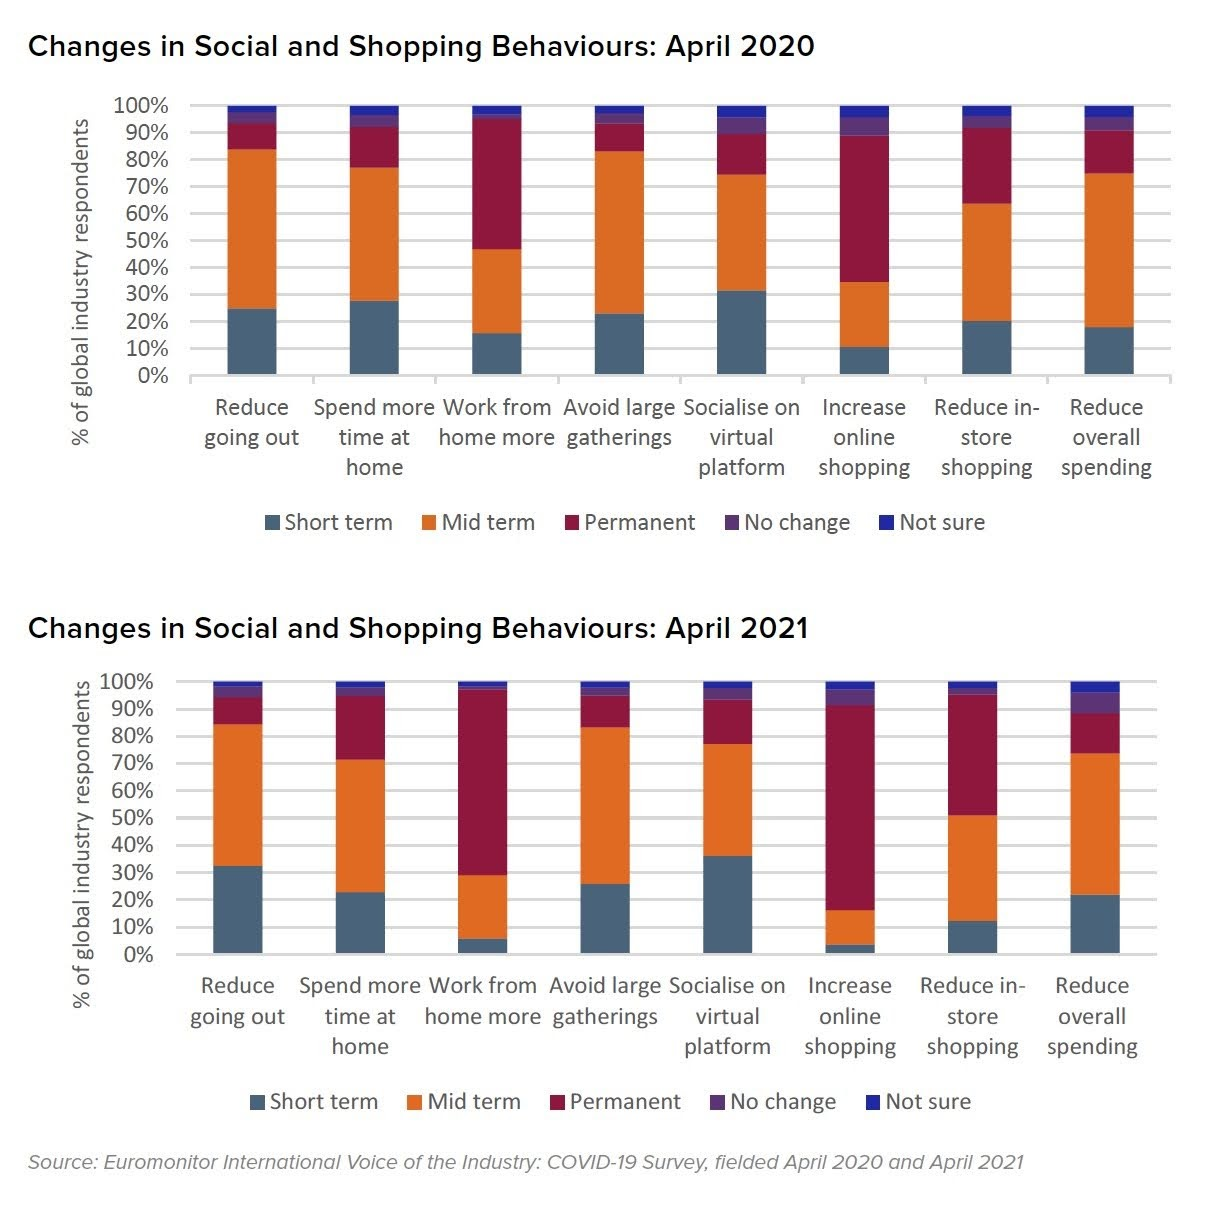 Changes in Social and Shopping Behaviours: April 2020 and April 2021. Source: Euromonitor International Voice of the Industry: COVID-19 Survey, fielded April 2020 and April 2021